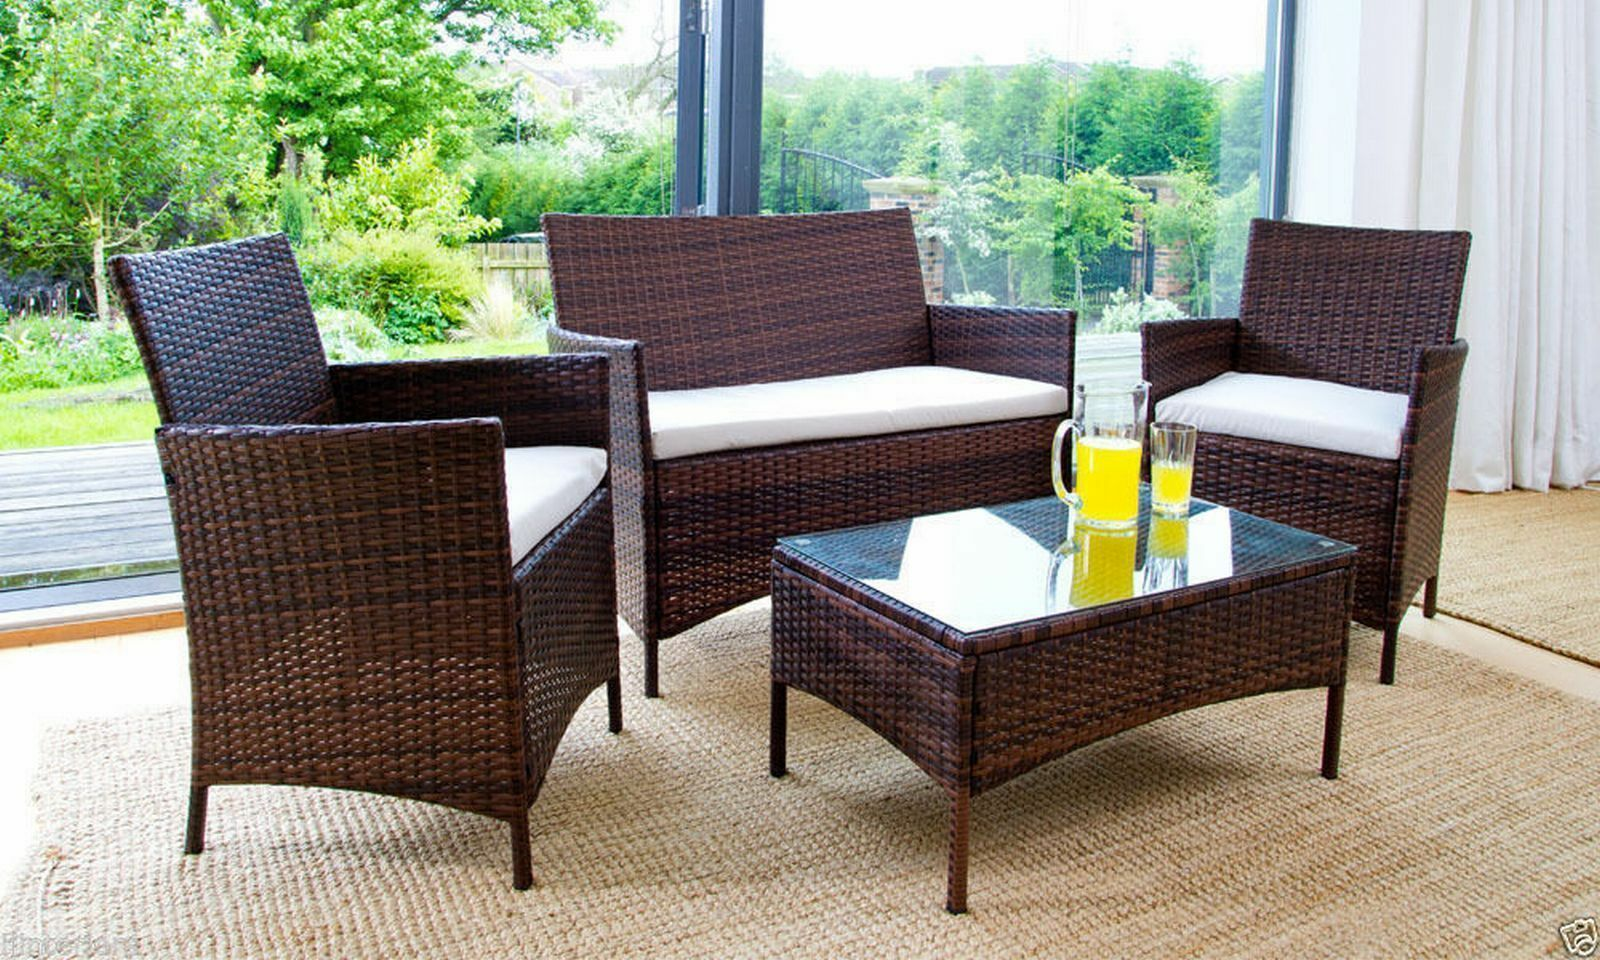 Rattan garden furniture set 4 piece chairs sofa table for Outdoor furniture 4 piece